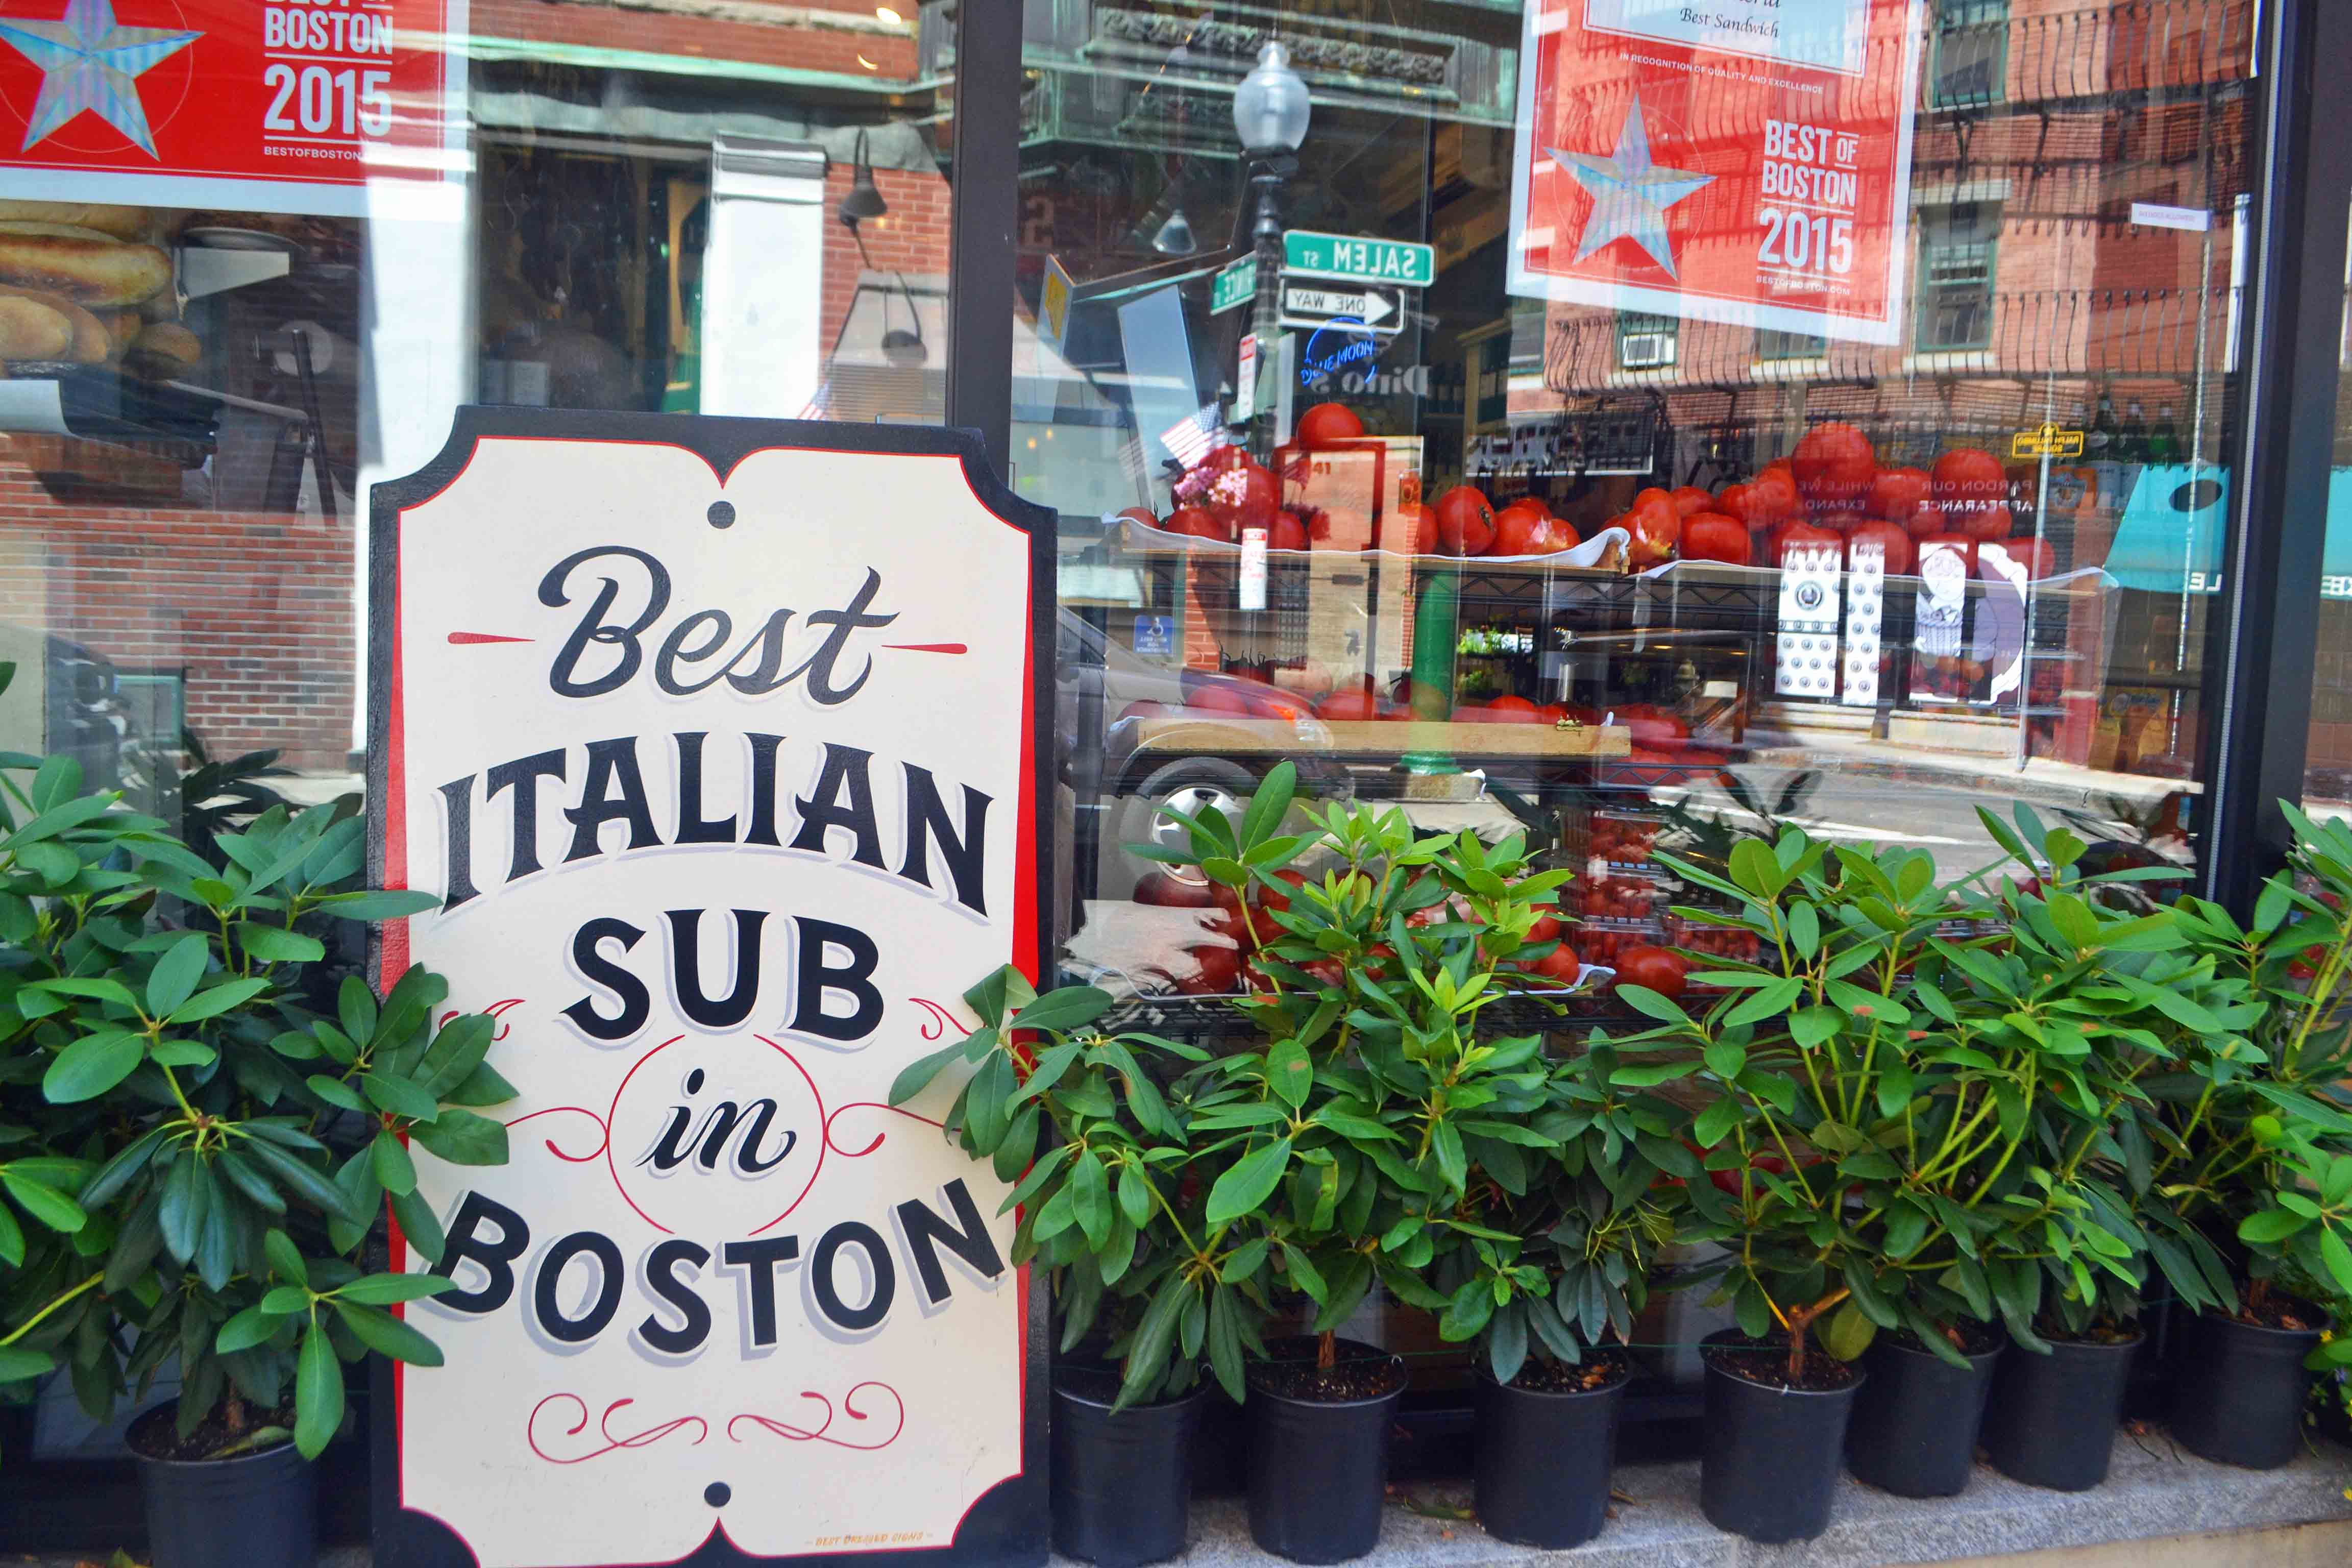 Best Italian Subs in Boston. Best Places to Eat and See in Boston. A list of the best things to do and best places to eat while traveling to Boston. Weather in Boston, transportation in Boston, and entertainment and food in Boston. www.modernhoney.com